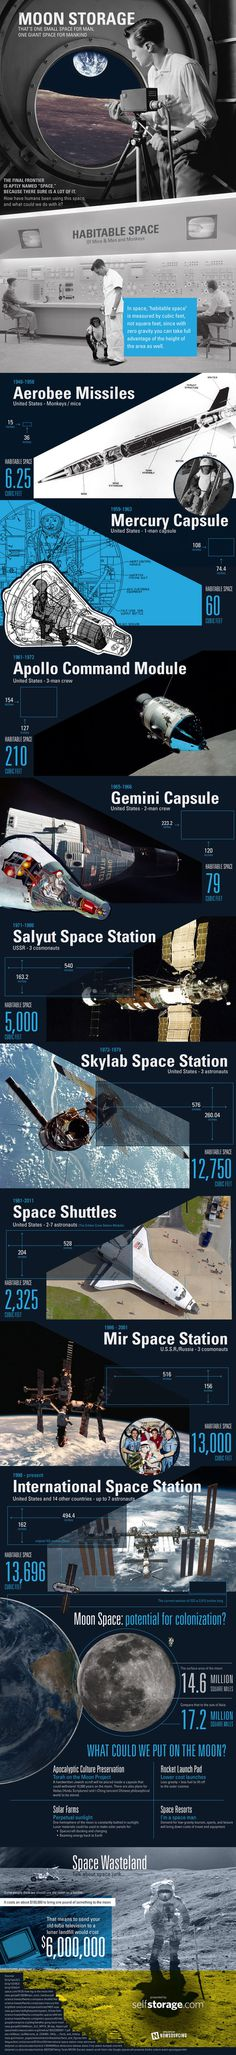 Storing stuff on the moon could be pricey, but vacationing there could be doable.  Check out this infographic for more.